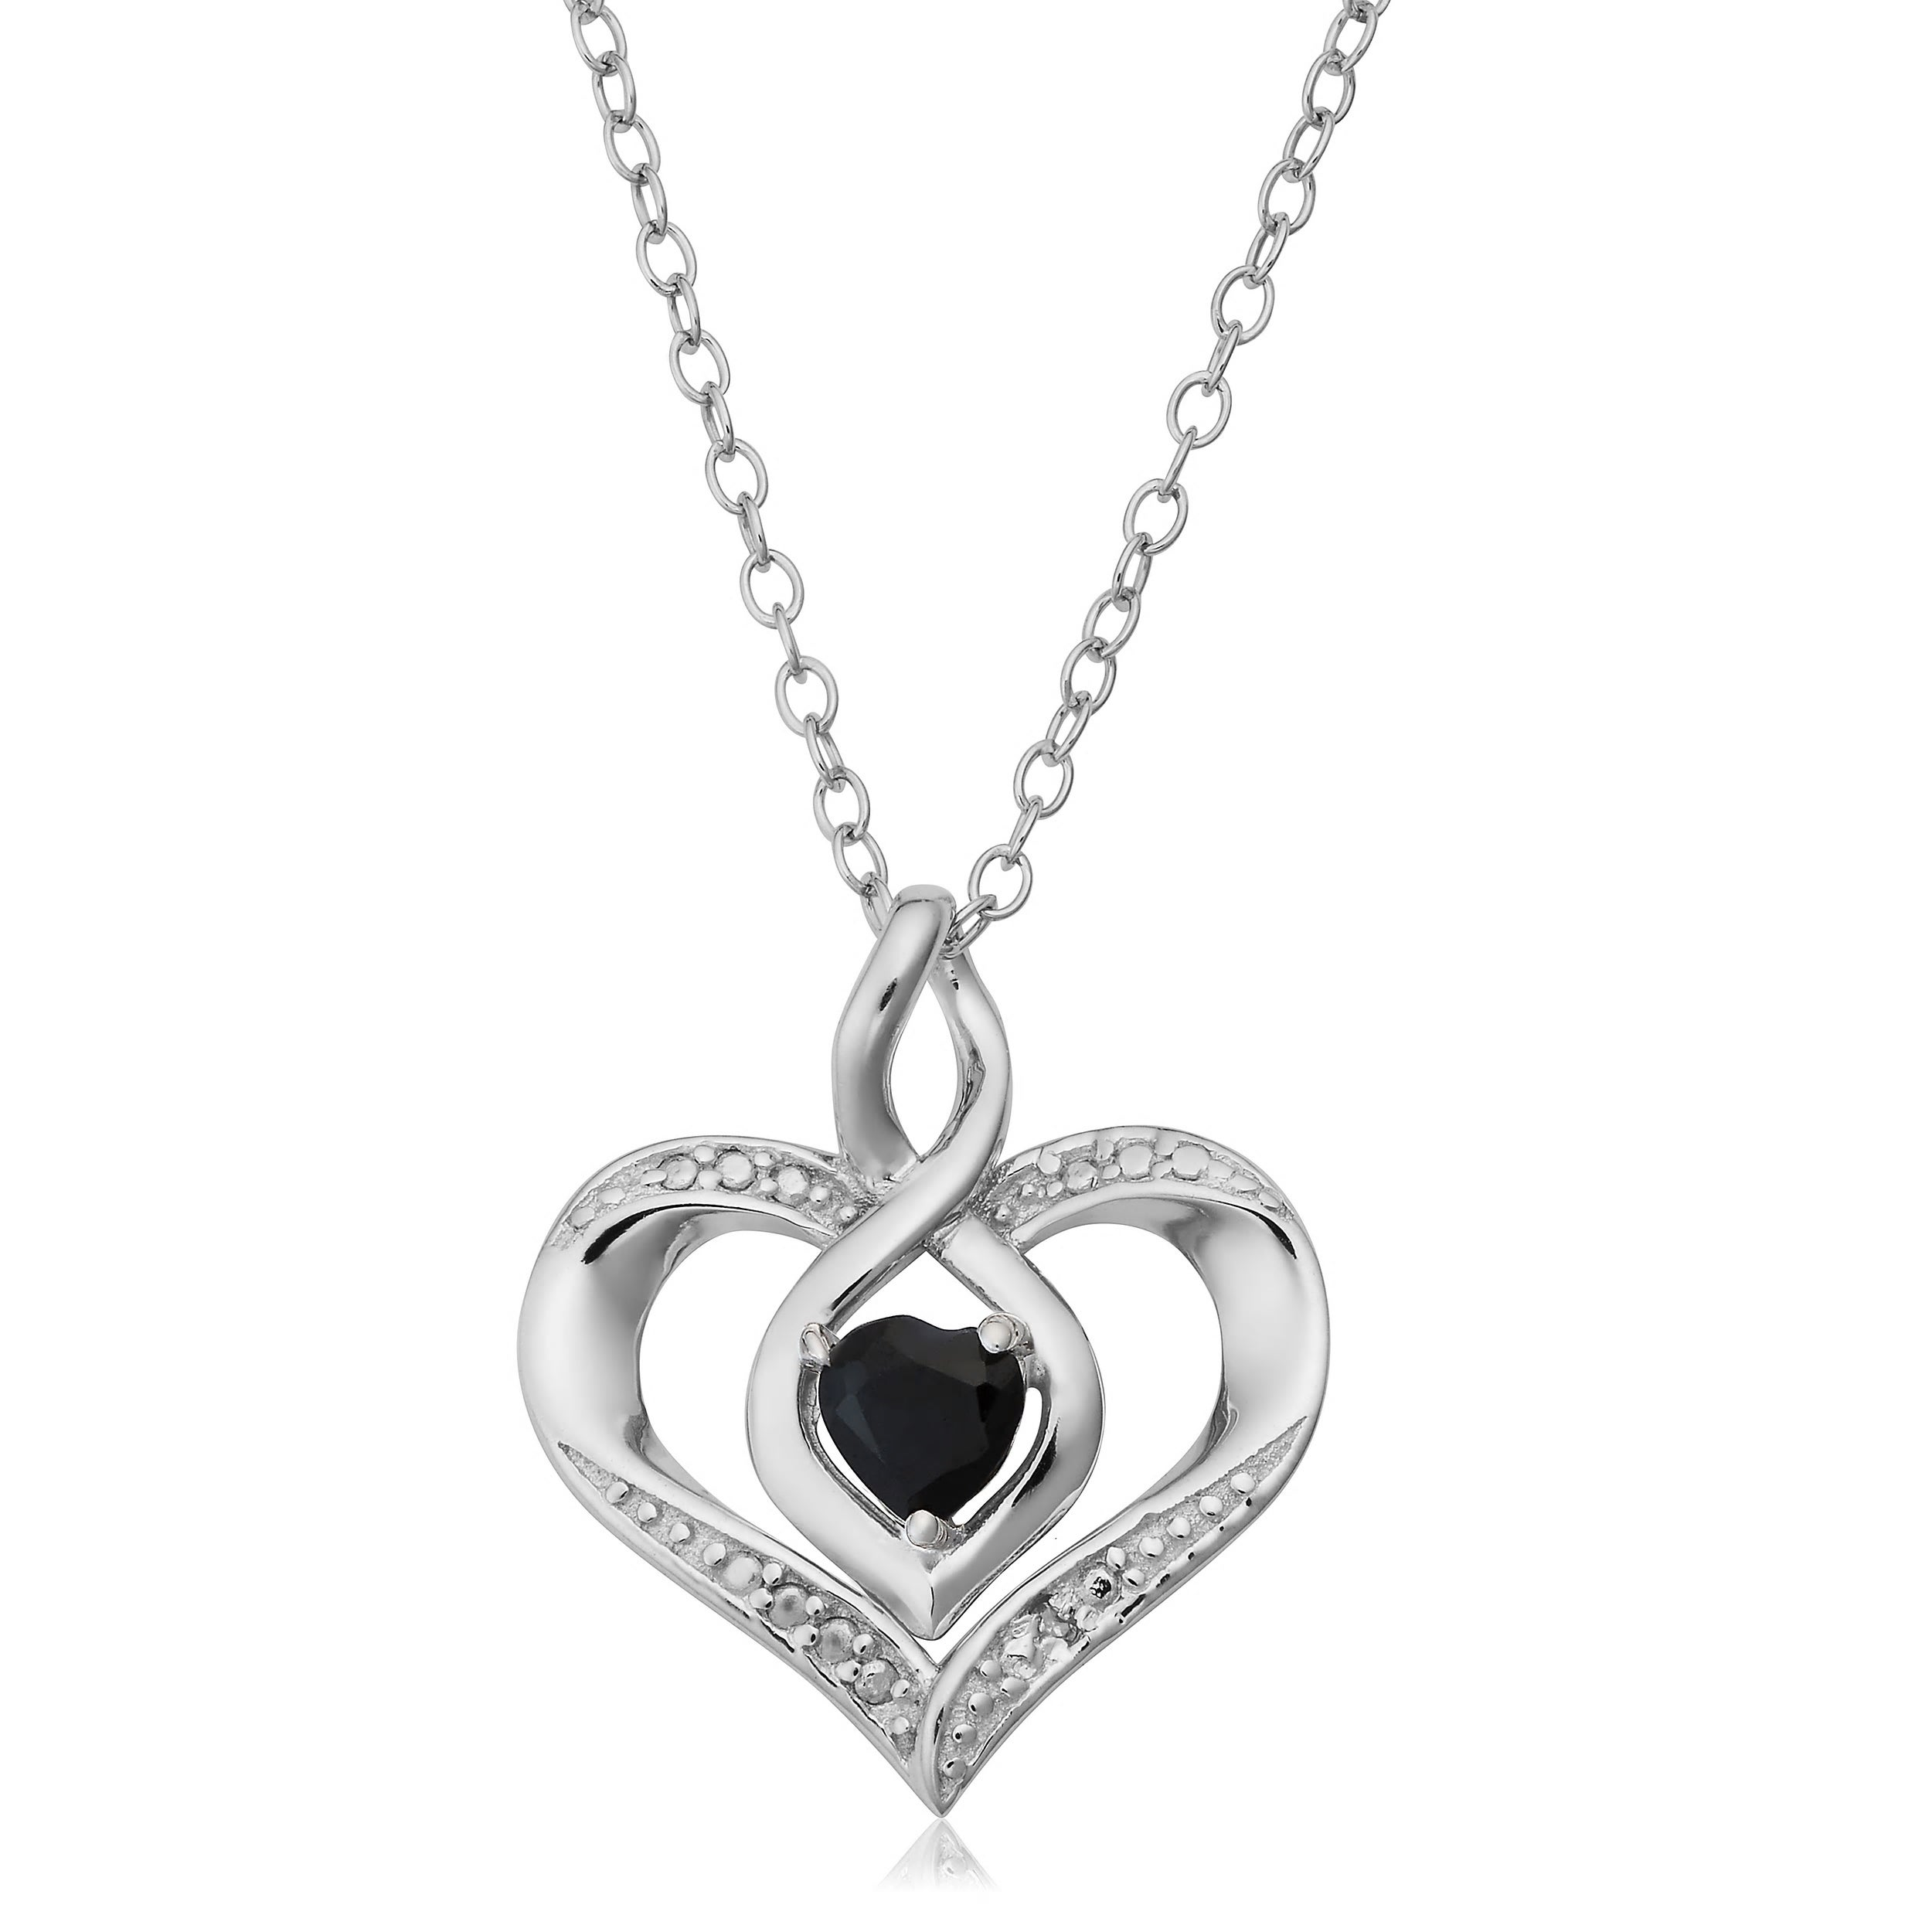 White Ice Sterling Silver Heart Shaped with Flower Center Diamond Necklace 18